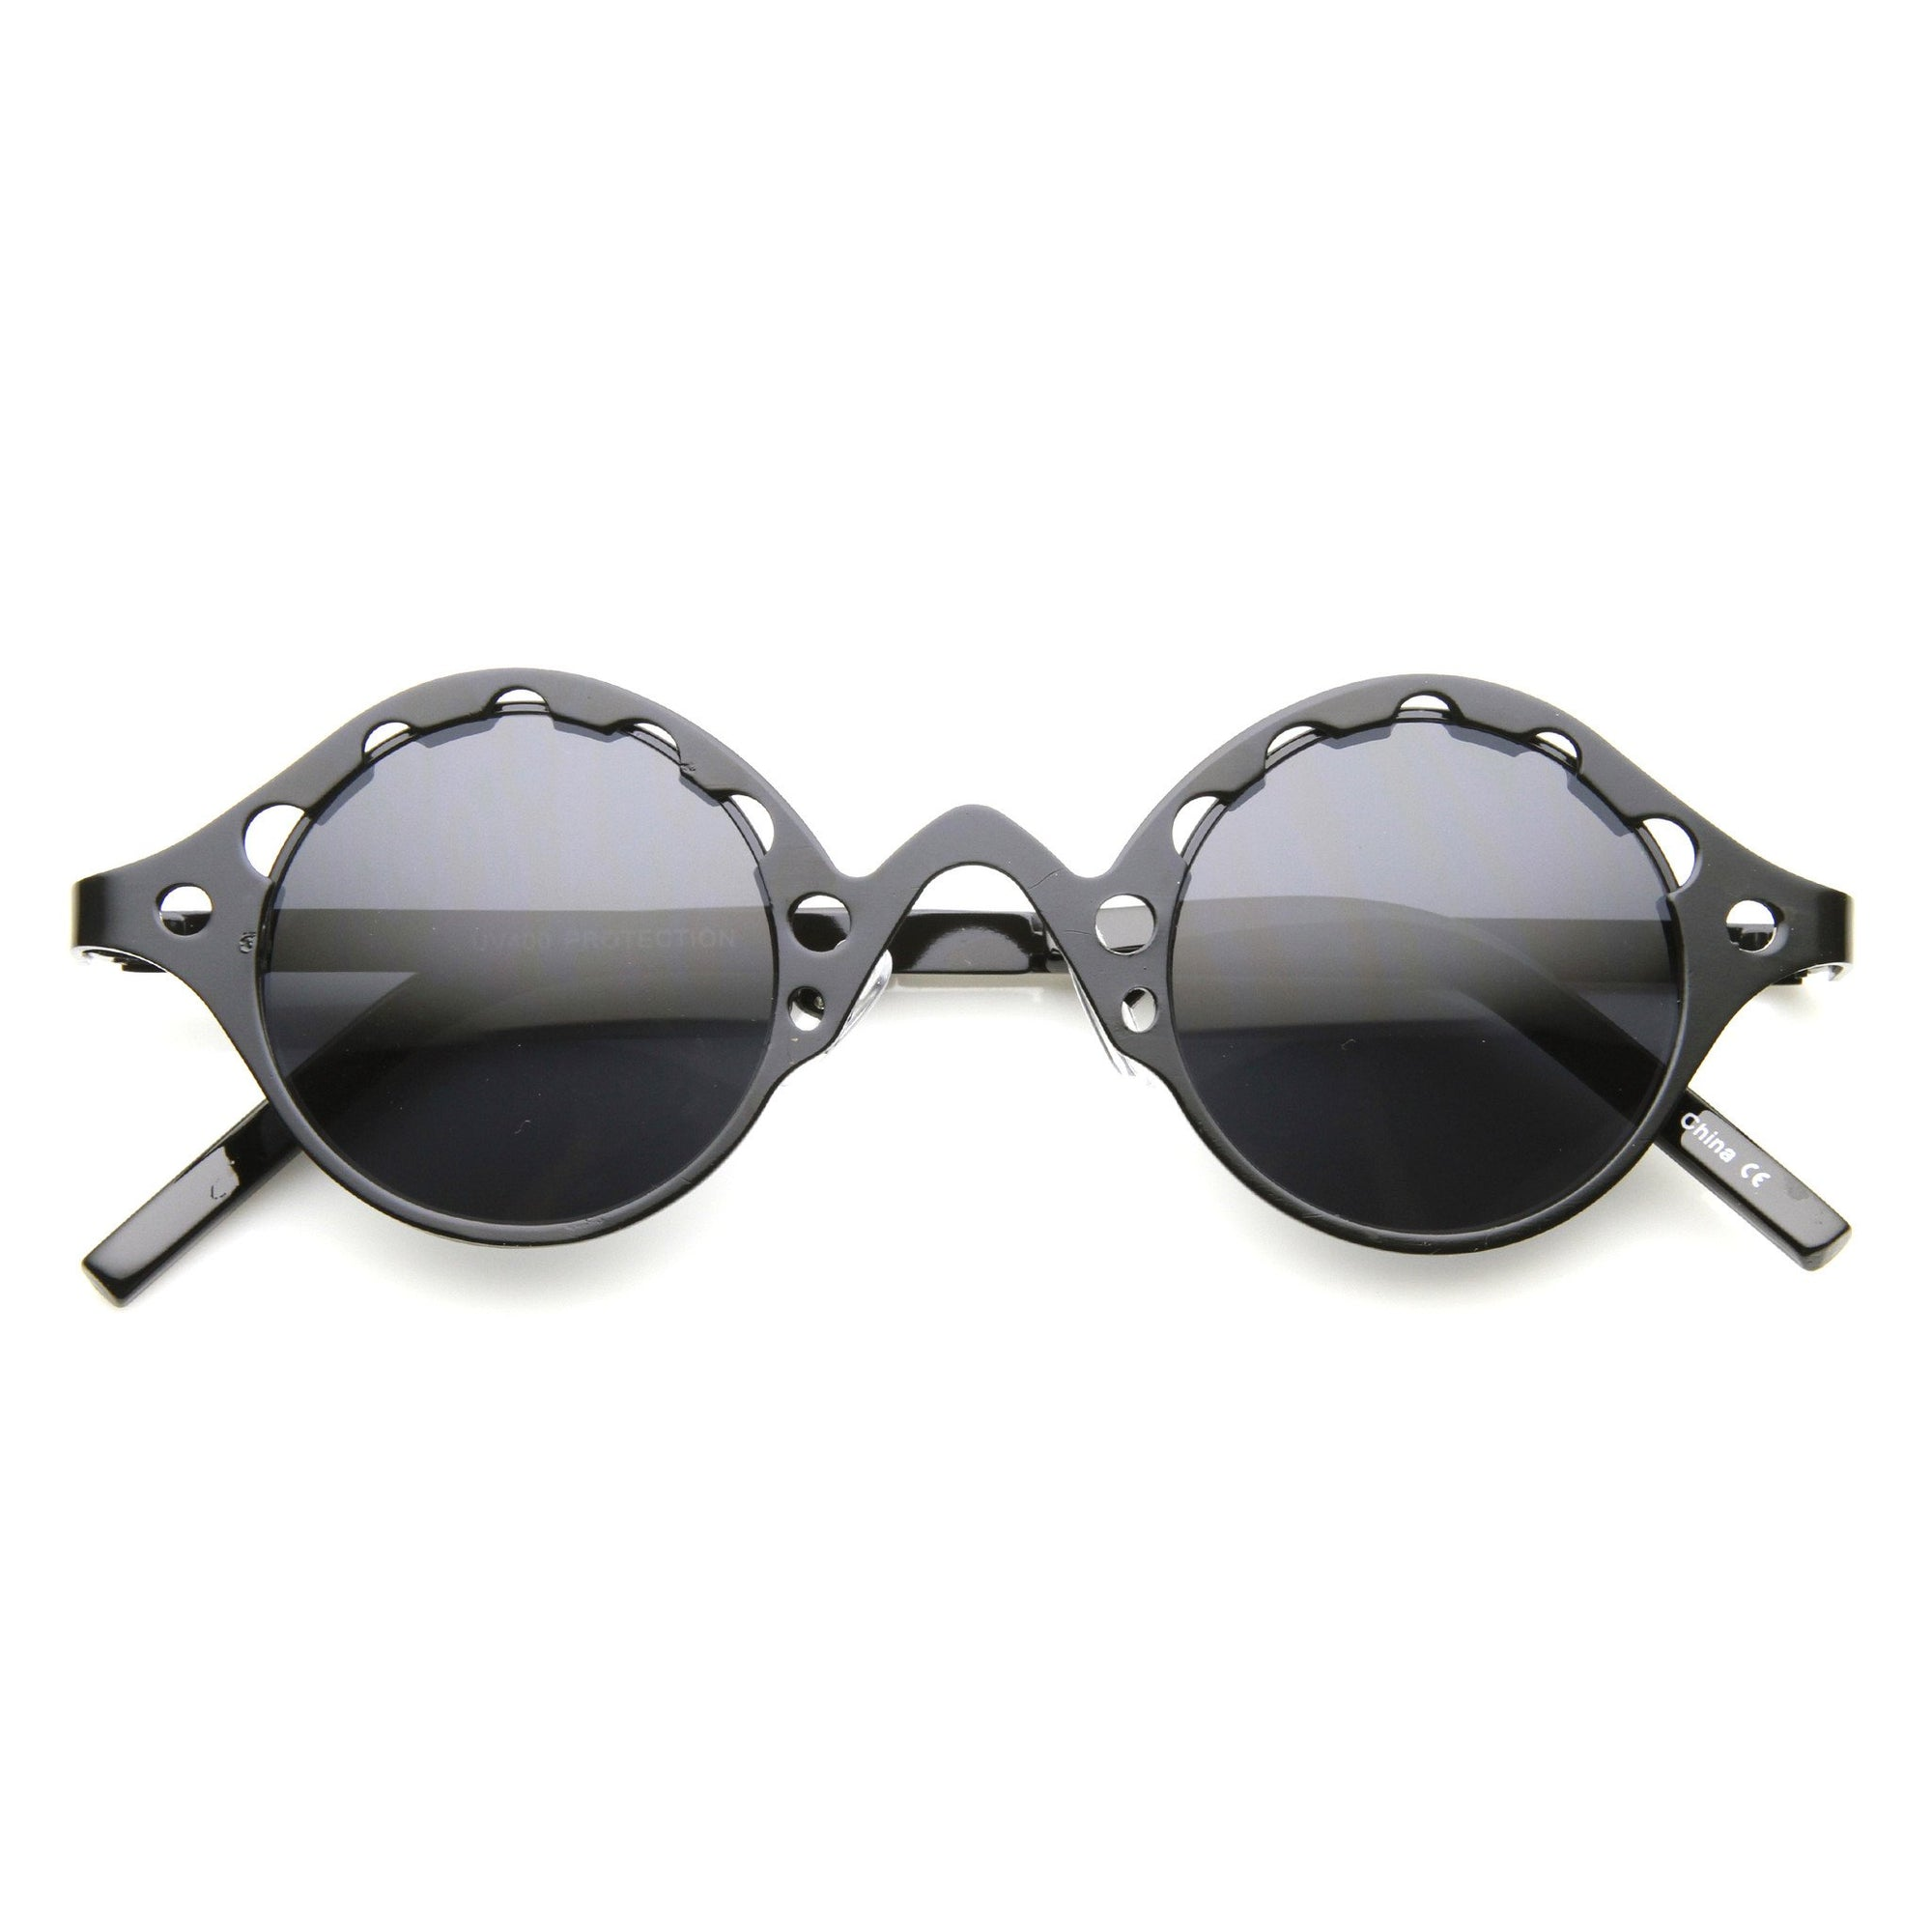 0ac4651e64 Vintage Inspired Steampunk Round Chain Frame Sunglasses 9579